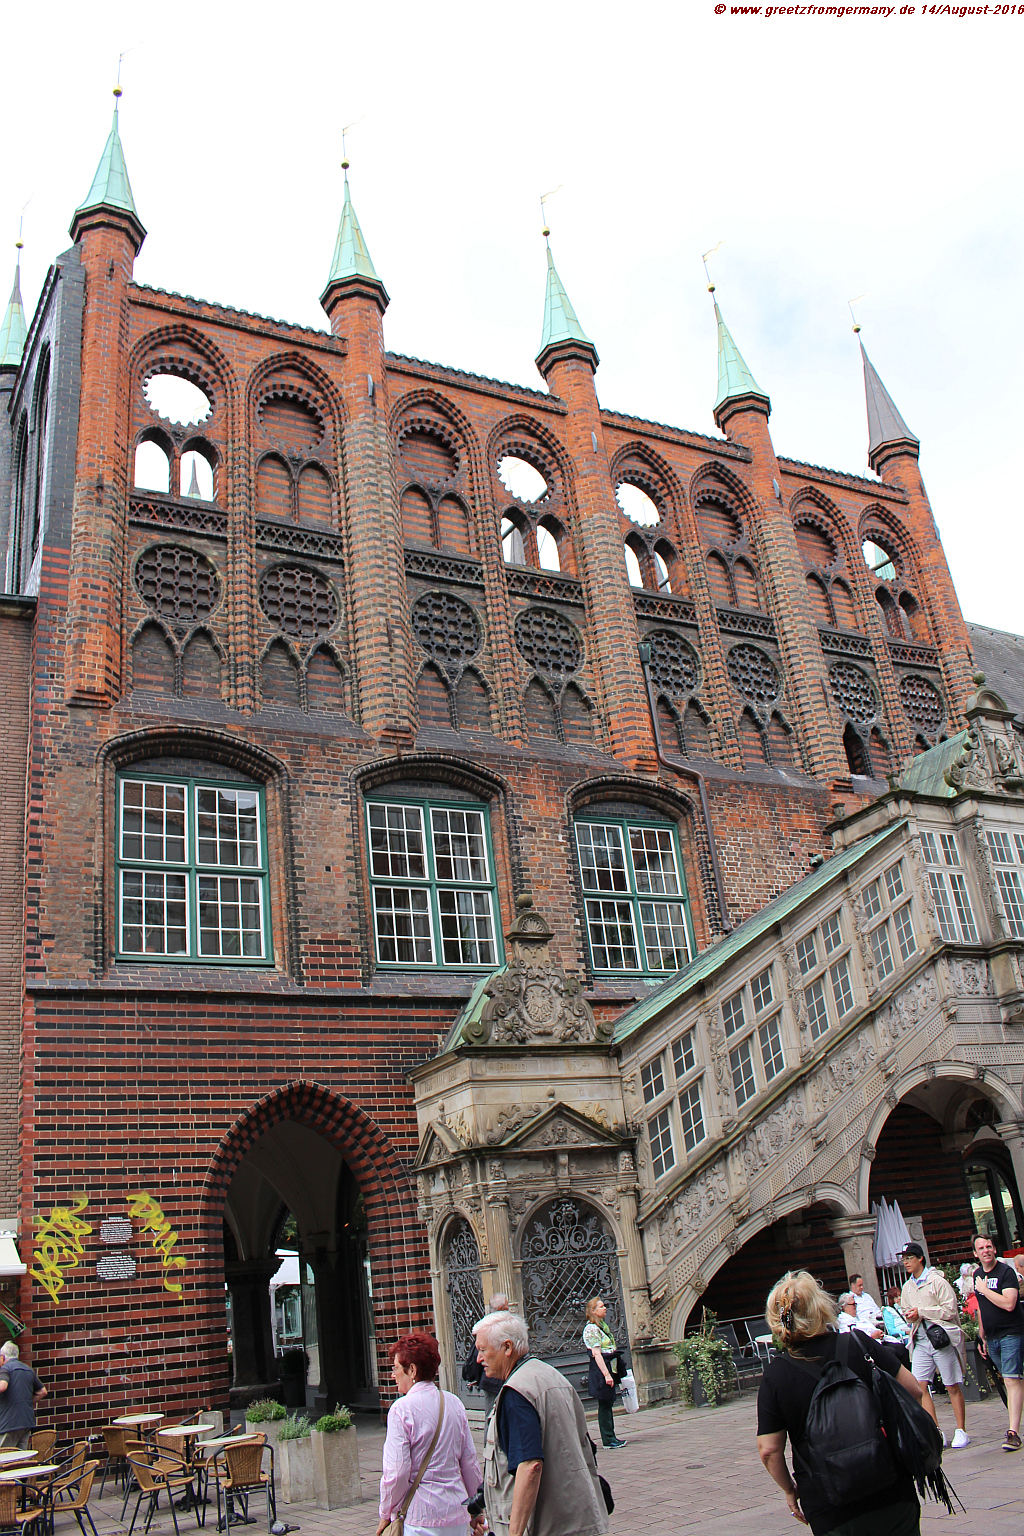 "Lübeck's town hall - a grand building still symbolizing the hightime of merchants' coalition ""Hanse"" and the political benefits that were installed during these times as well - not very far from where people were imprisoned, tortured and killed if their political views were not sufficiently aligned with those of the government."